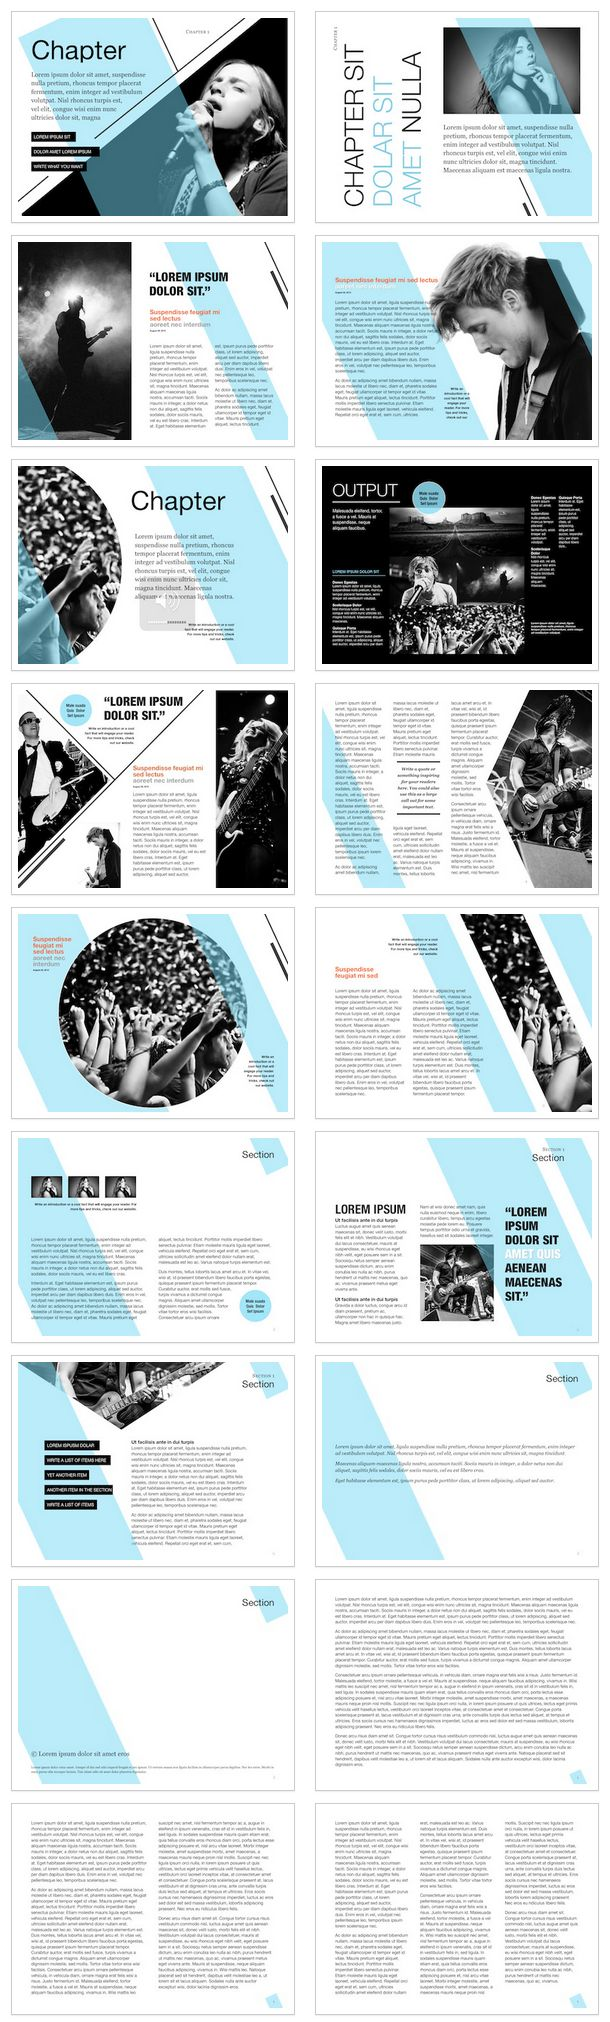 Fabuleux 46 best InDesign kiadványok images on Pinterest | Editorial design  OW55